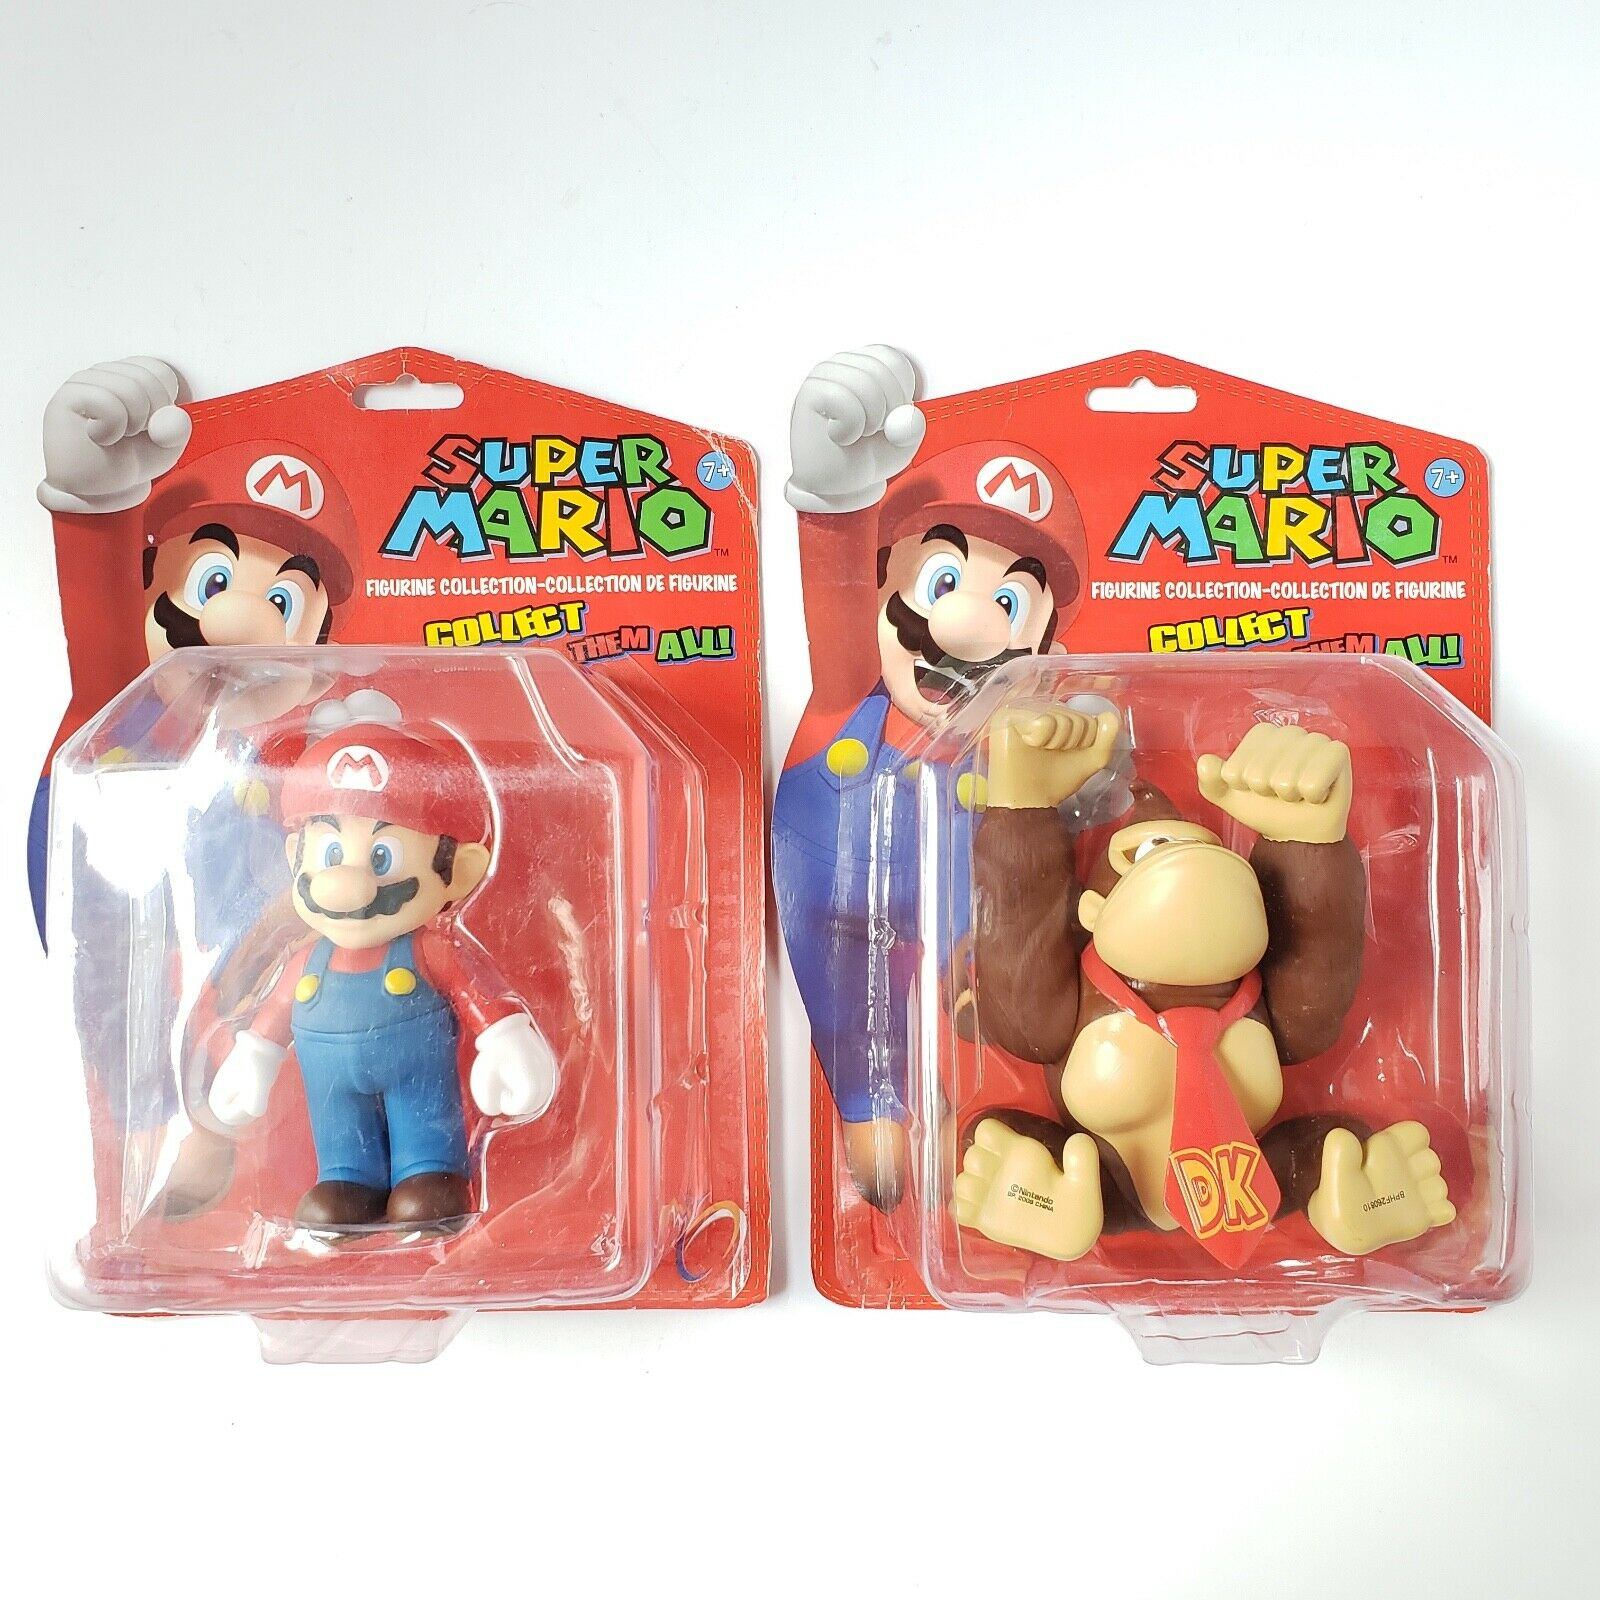 Super Mario Figurine Collection 5  Collectable Figures Mario & Donkey Kong - NEW